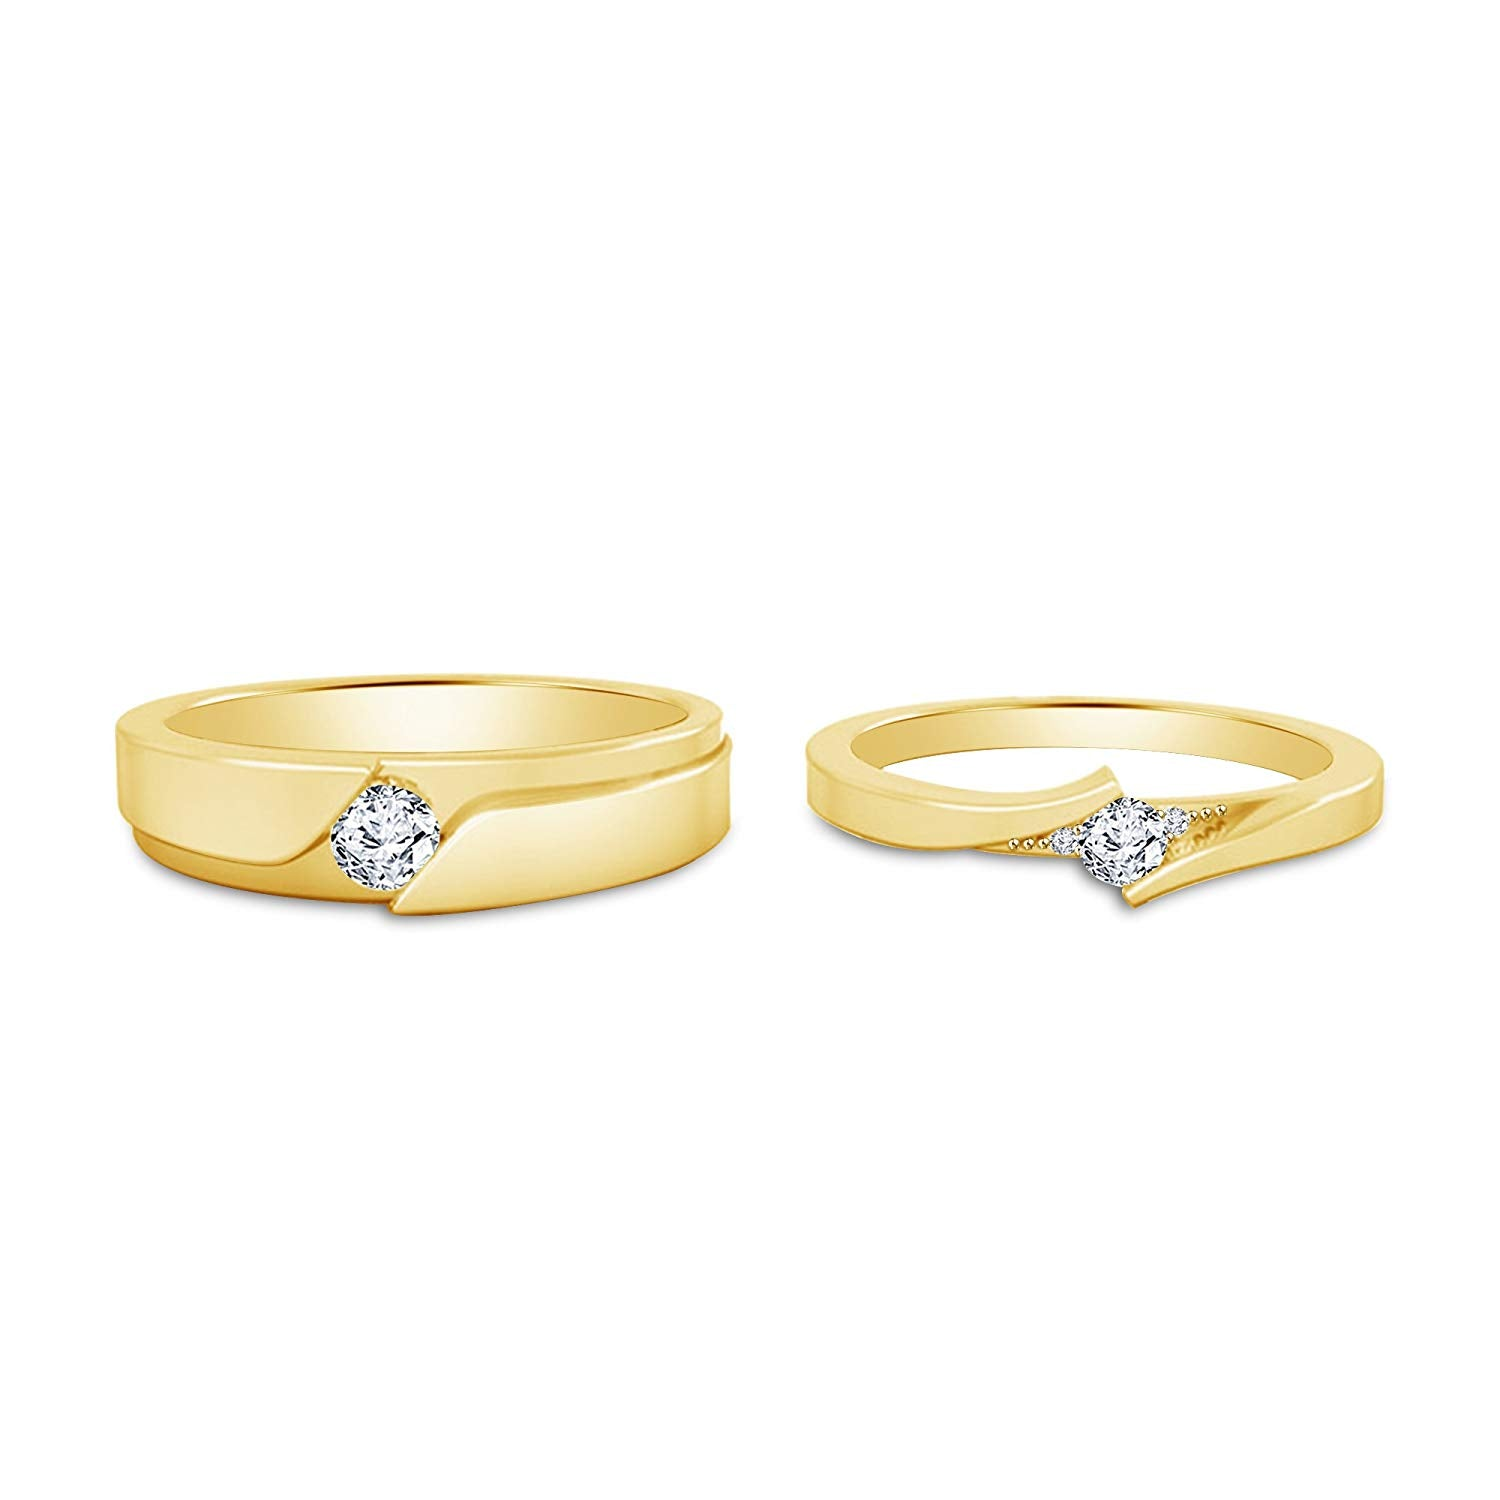 5adfd78b86 atjewels Elegant Couple Ring in 14K Yellow Gold Plated on 925 ...